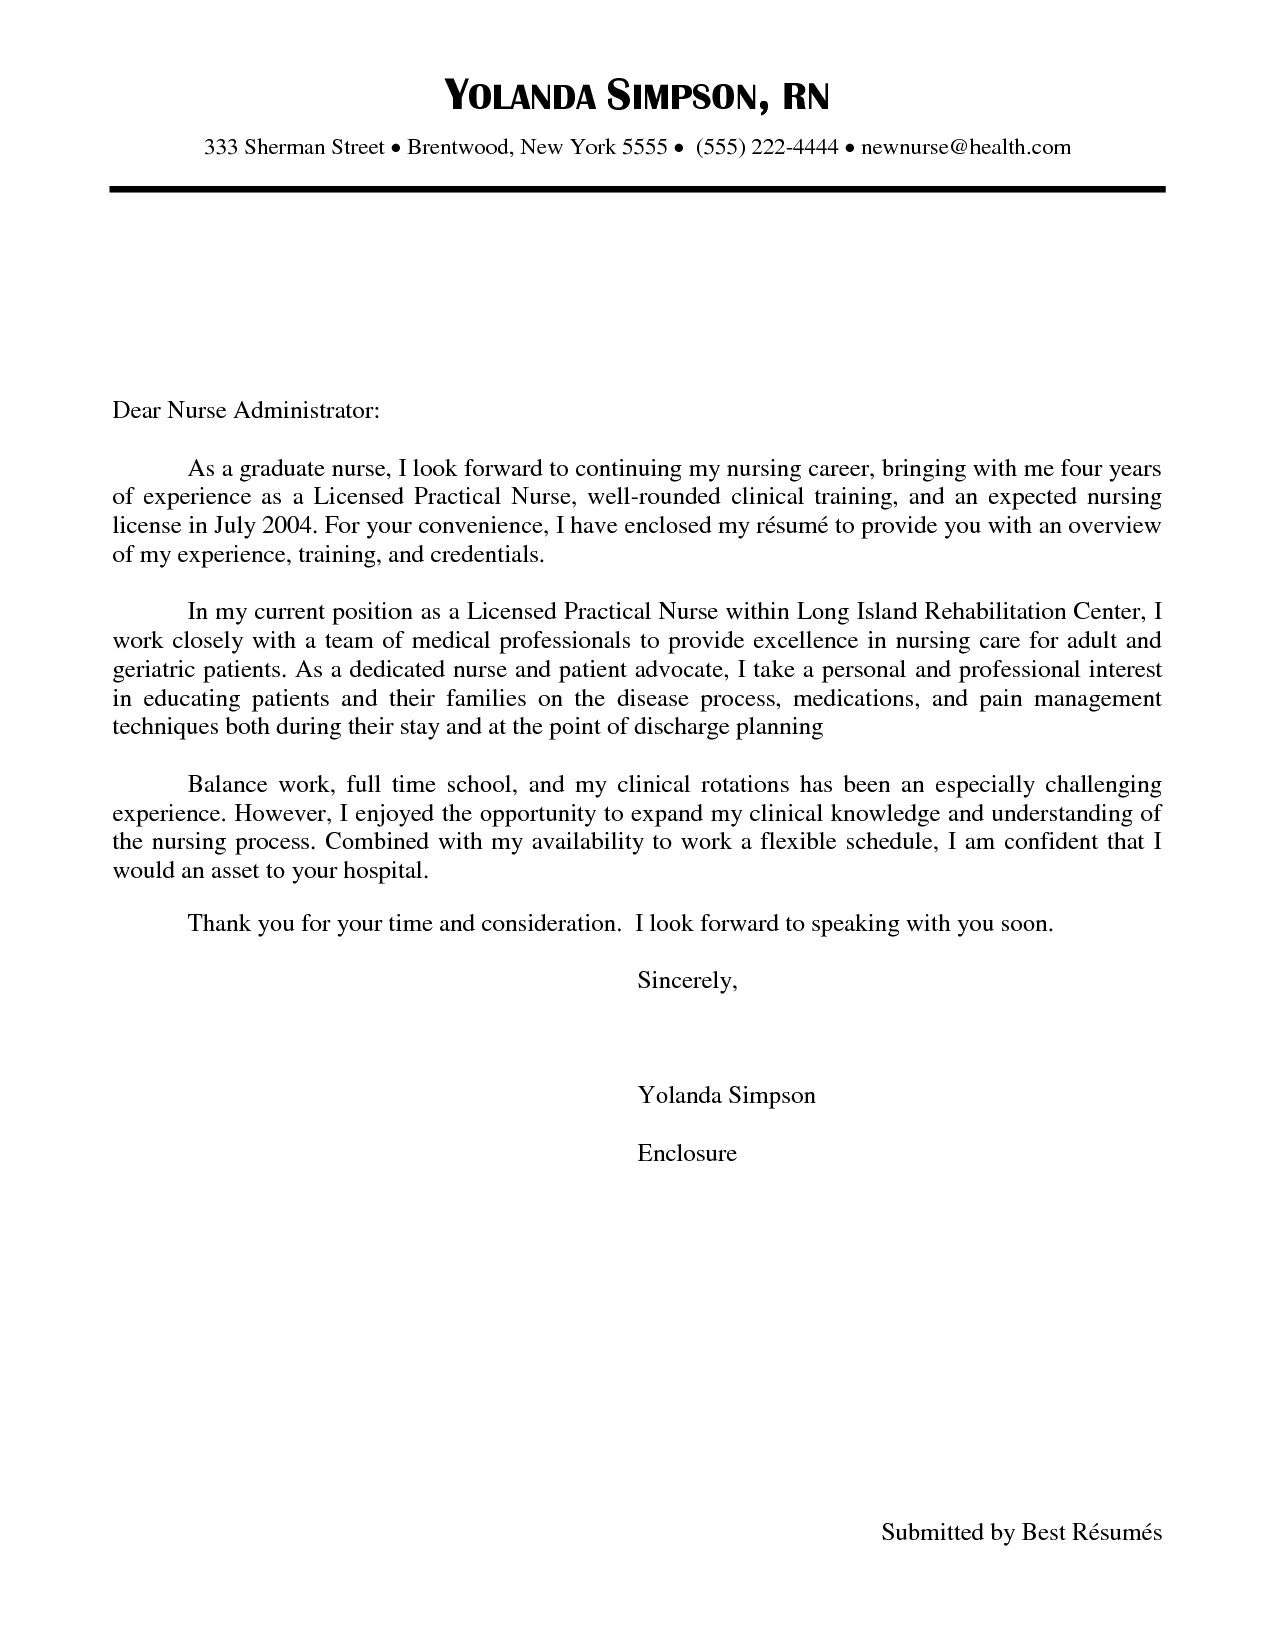 New grad nurse cover letter example cover letter for Sample cover letter for lpn position